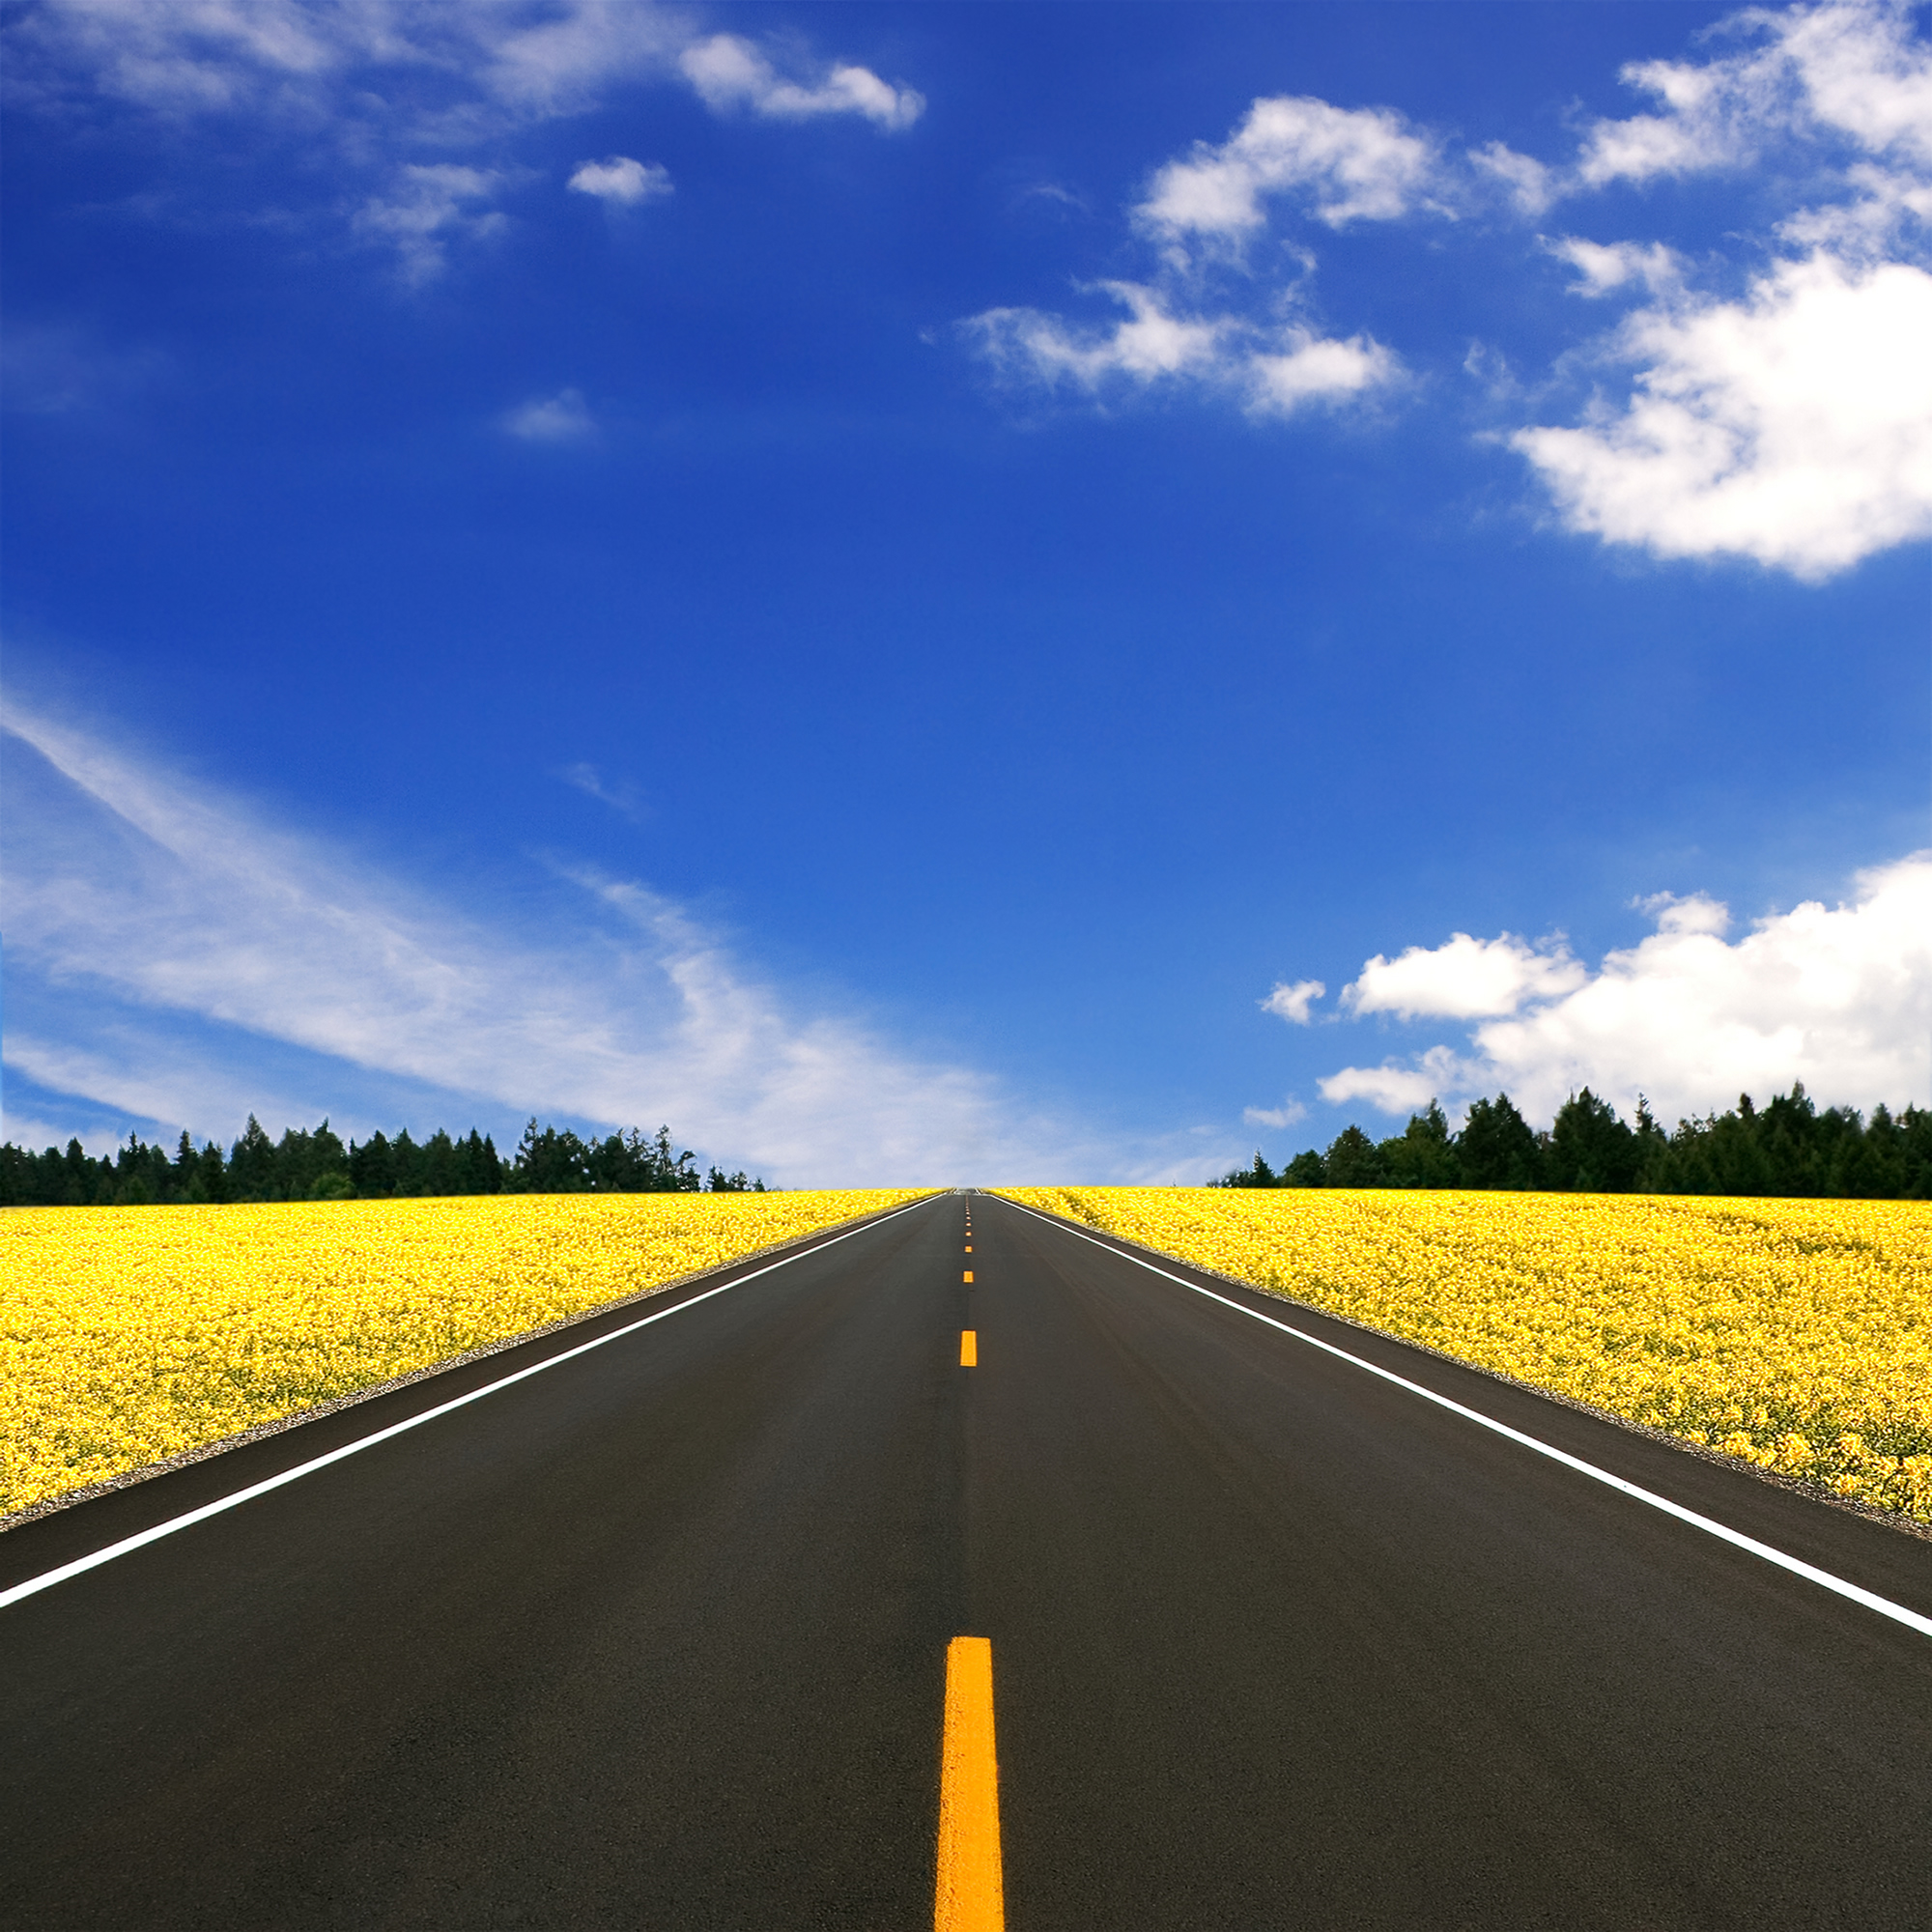 background road clipart 40 - photo #25